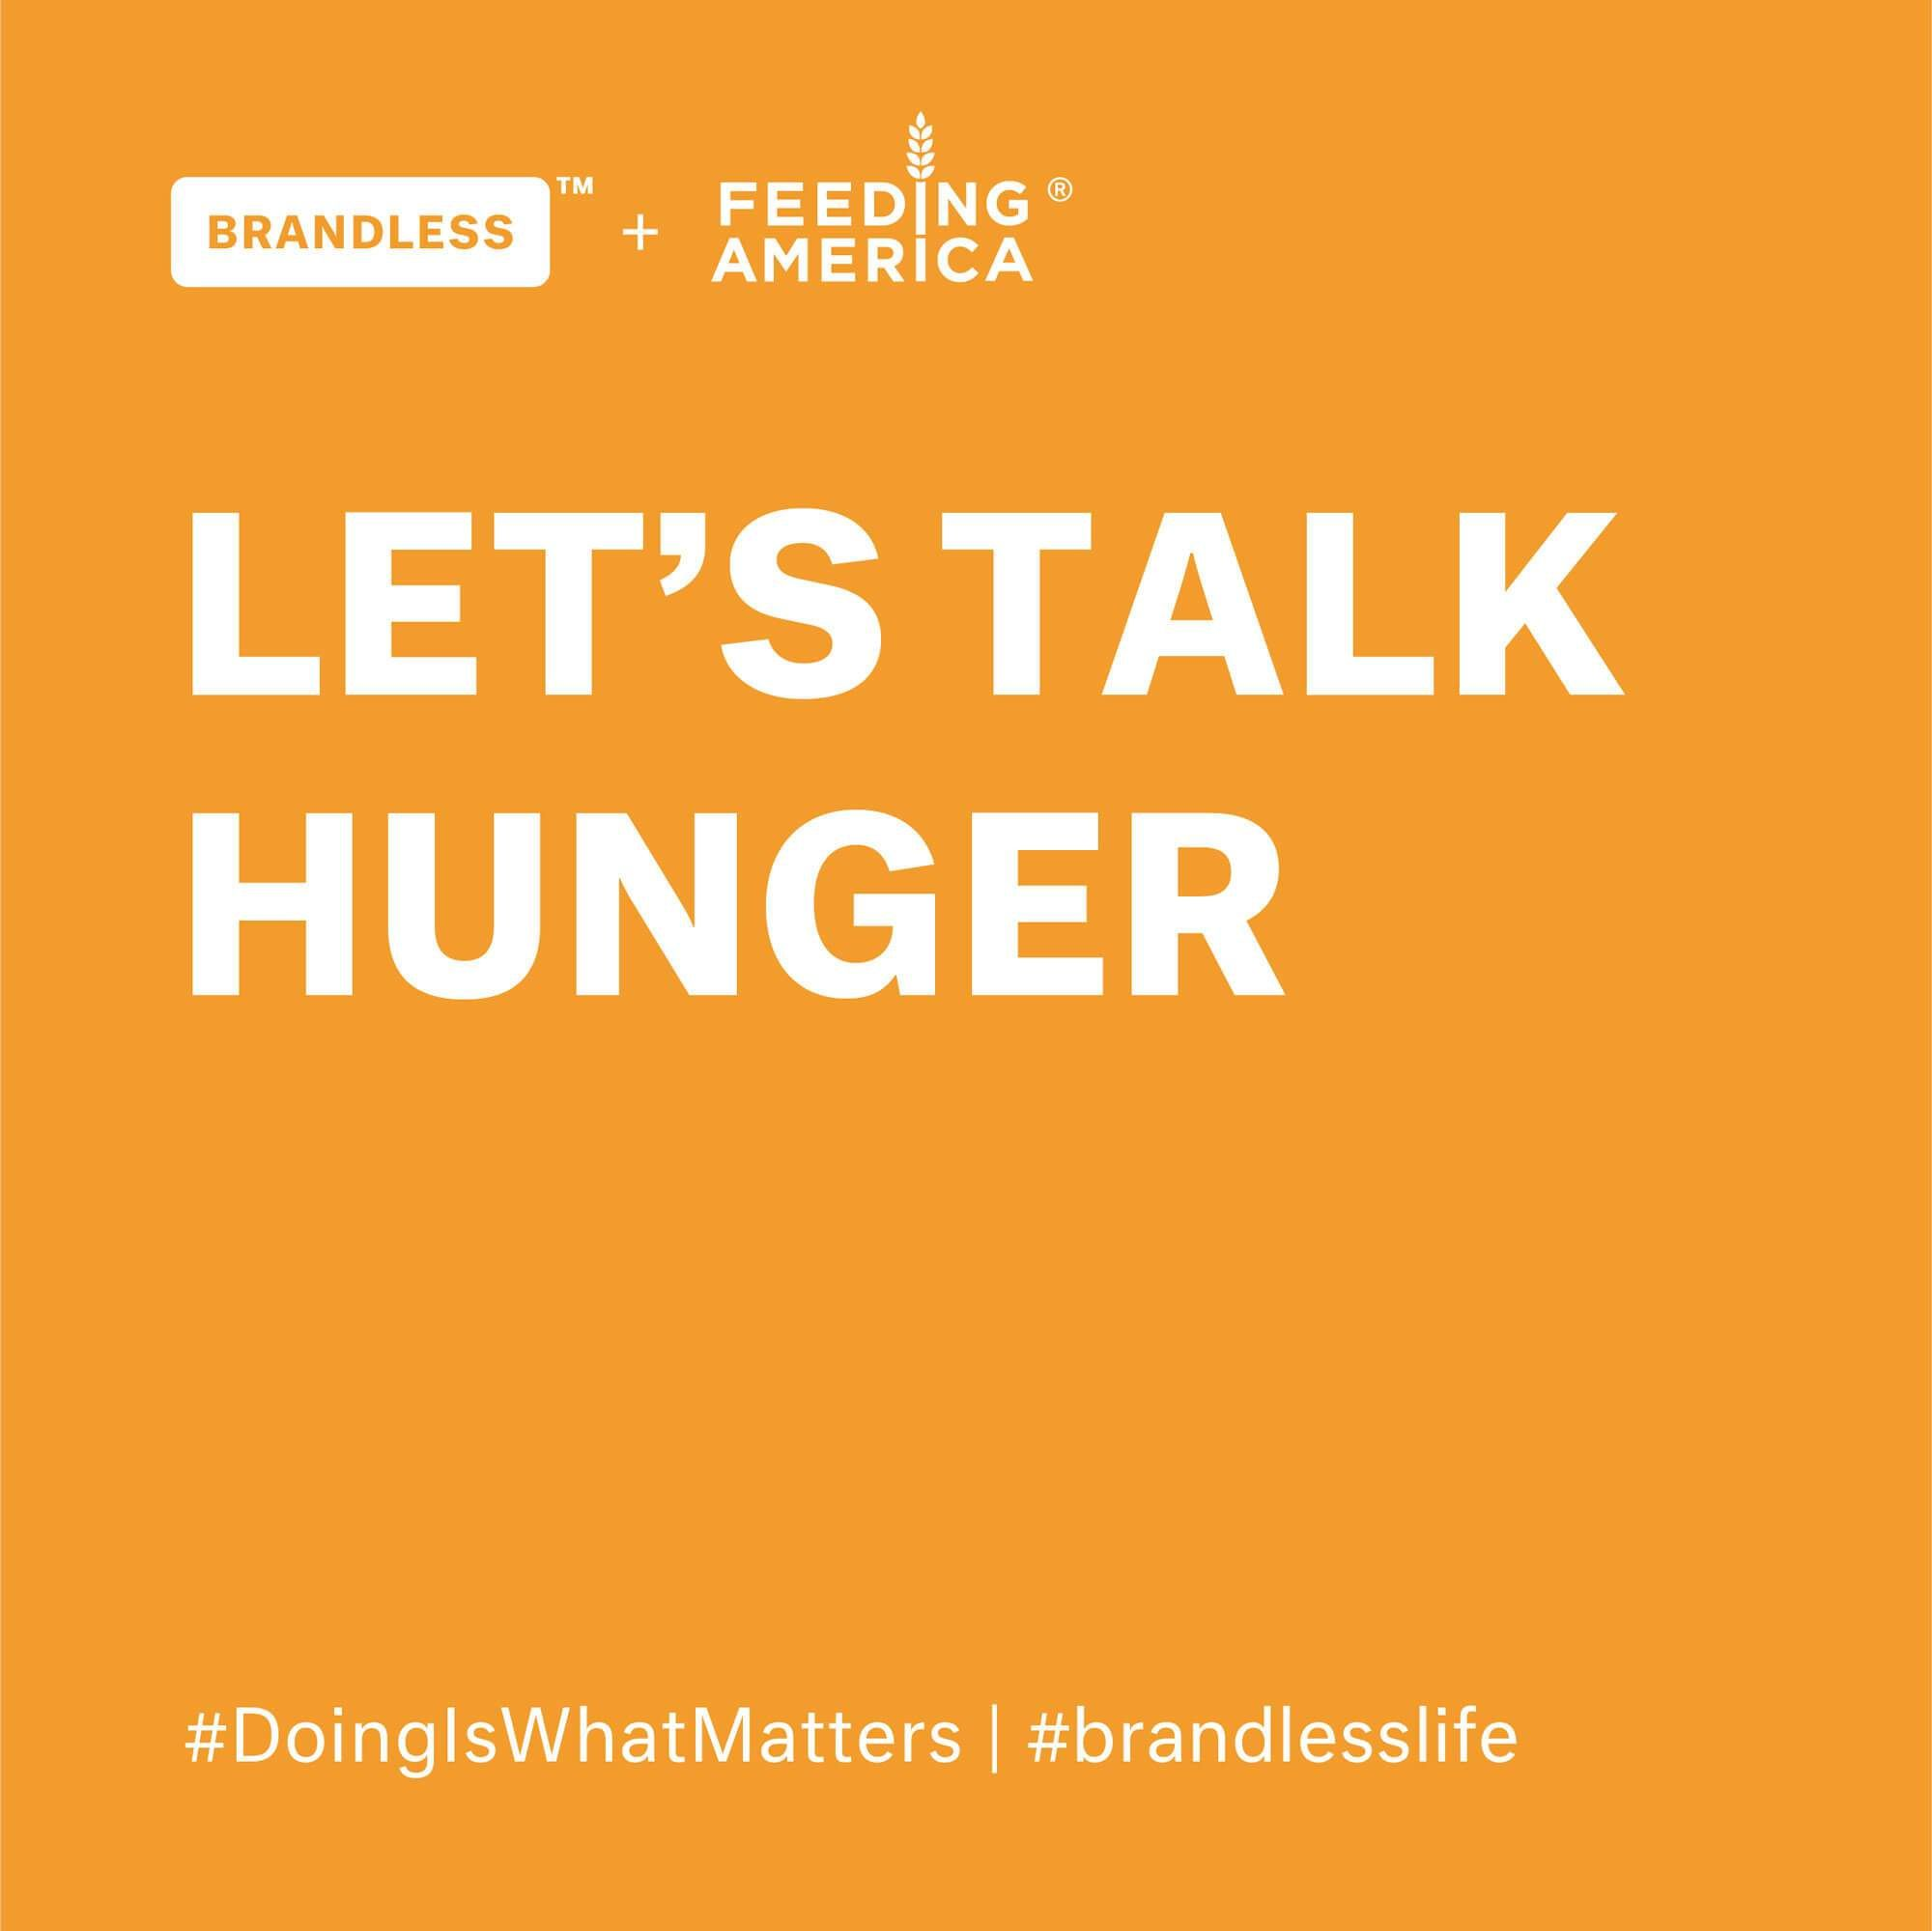 Brandless Is Going To Change The World 5 Reasons To LOVE